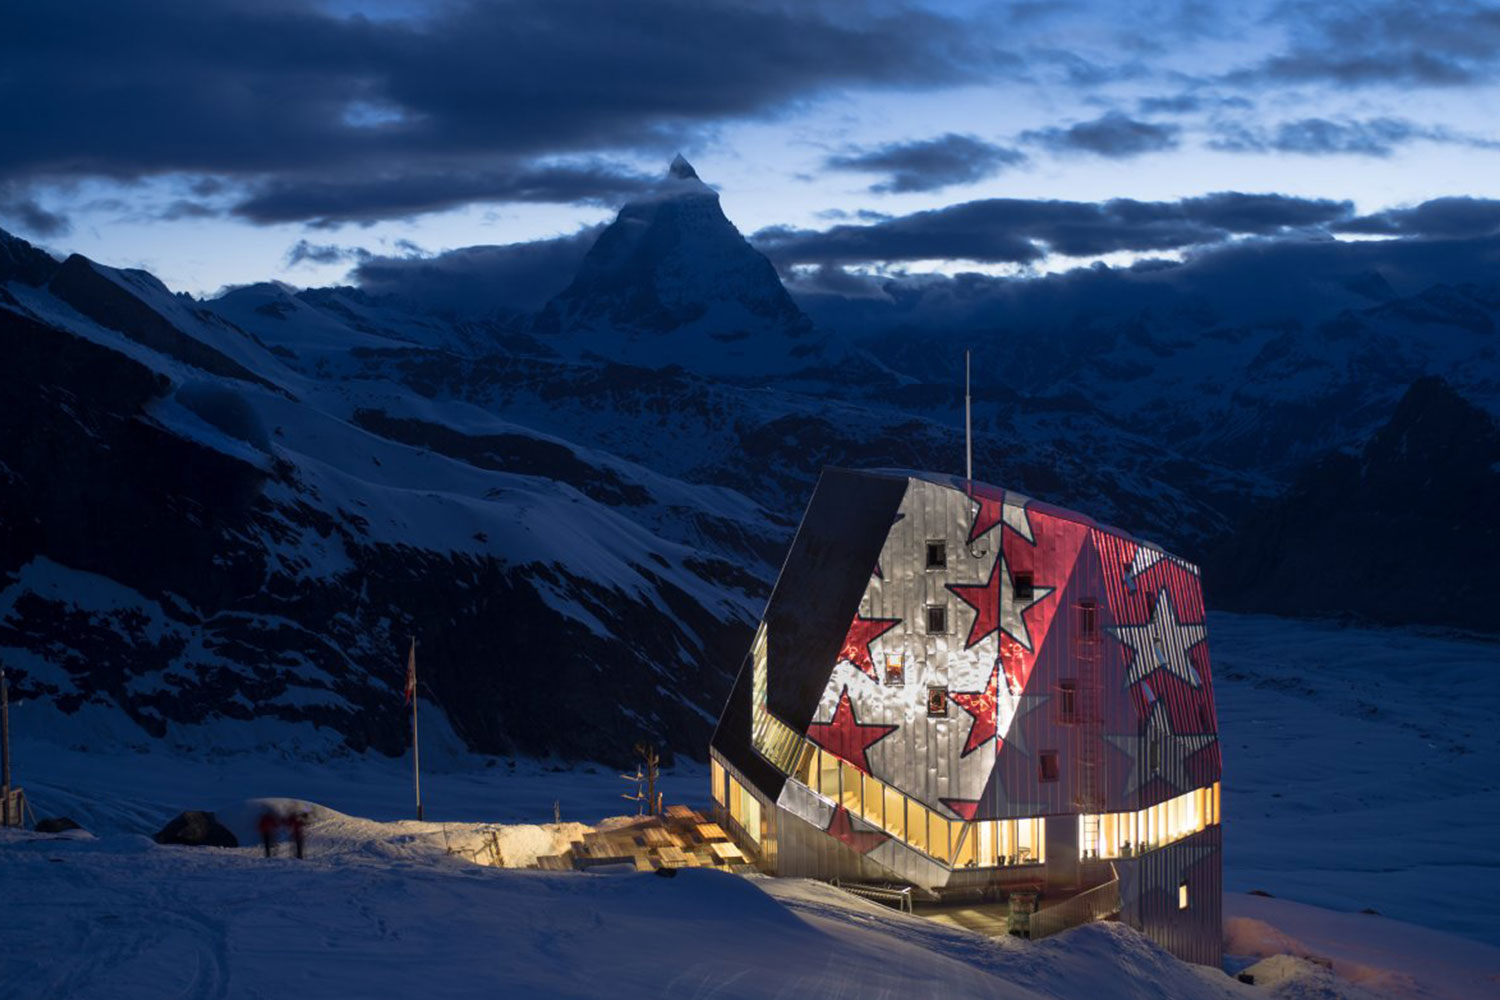 Global warming affecting mountains and glaciers is one of the Swiss Alpine Club's biggest challenges according to its president, Françoise Jaquet. The Monte Rosa Hut (9,458 feet) owned by the Club, covers 90% of its energy needs with photovoltaic solar cells on the roof and temperature sensors.